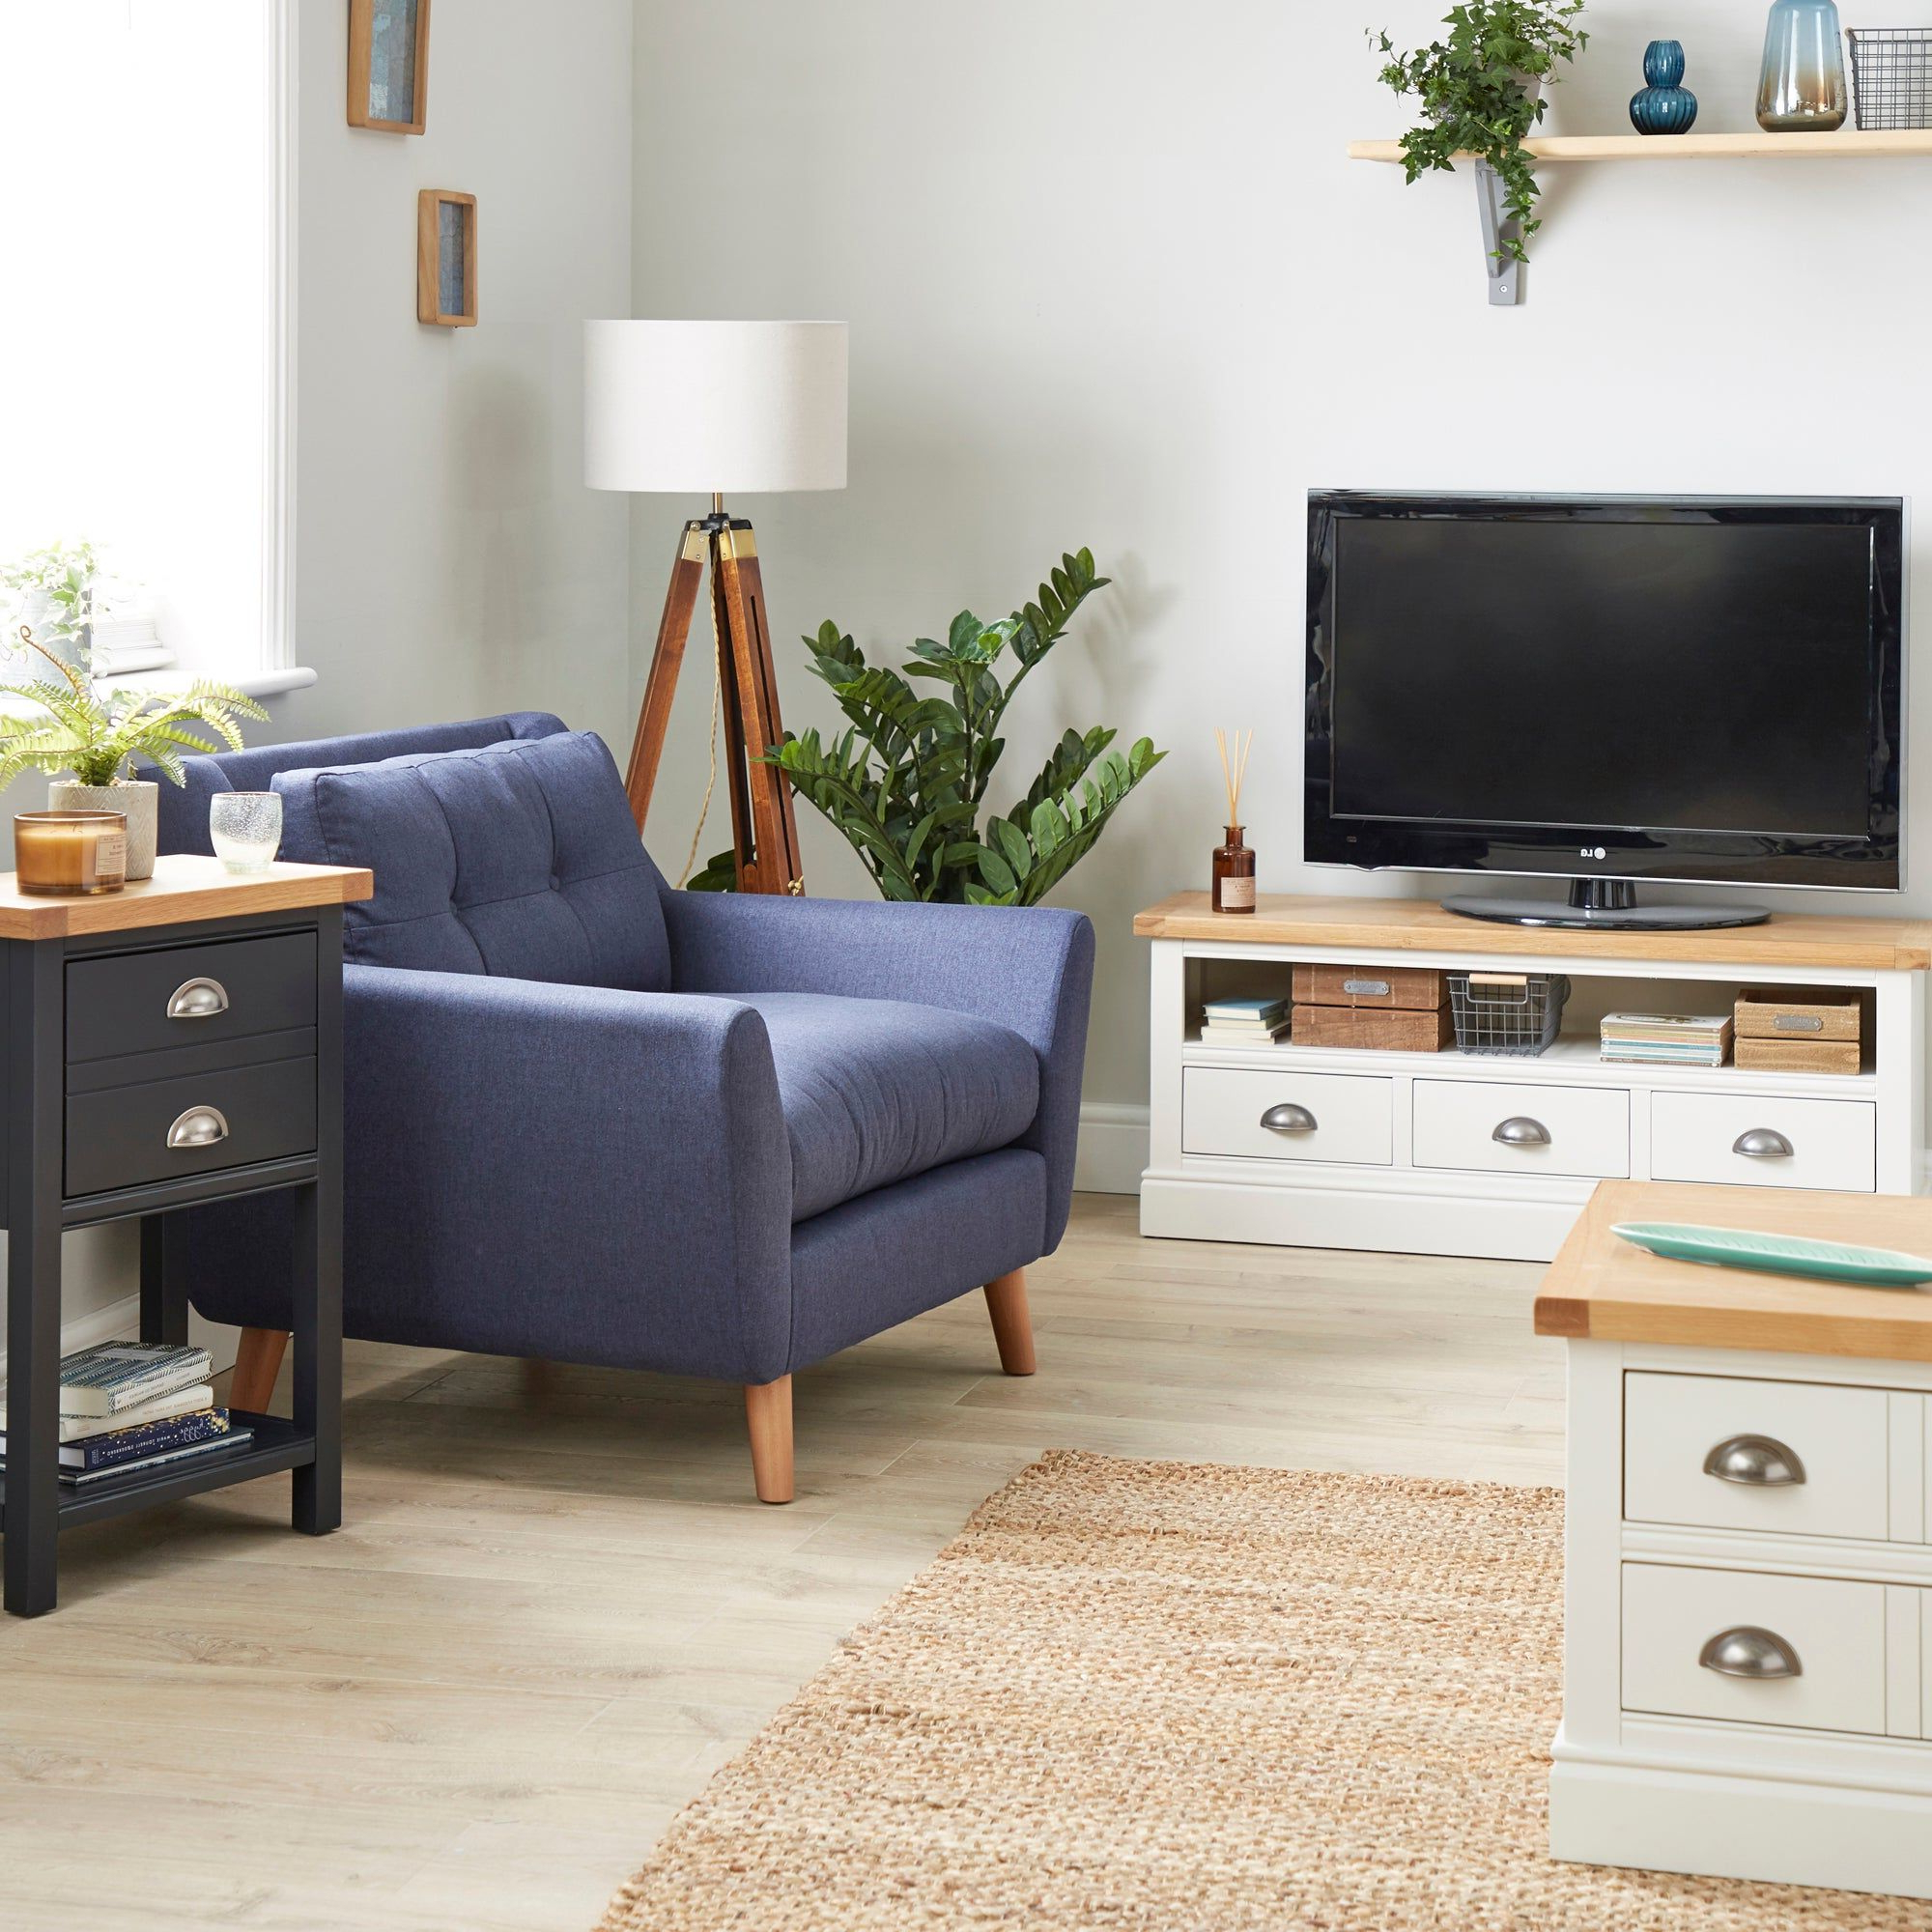 Living Room Furniture, Large (View 2 of 6)